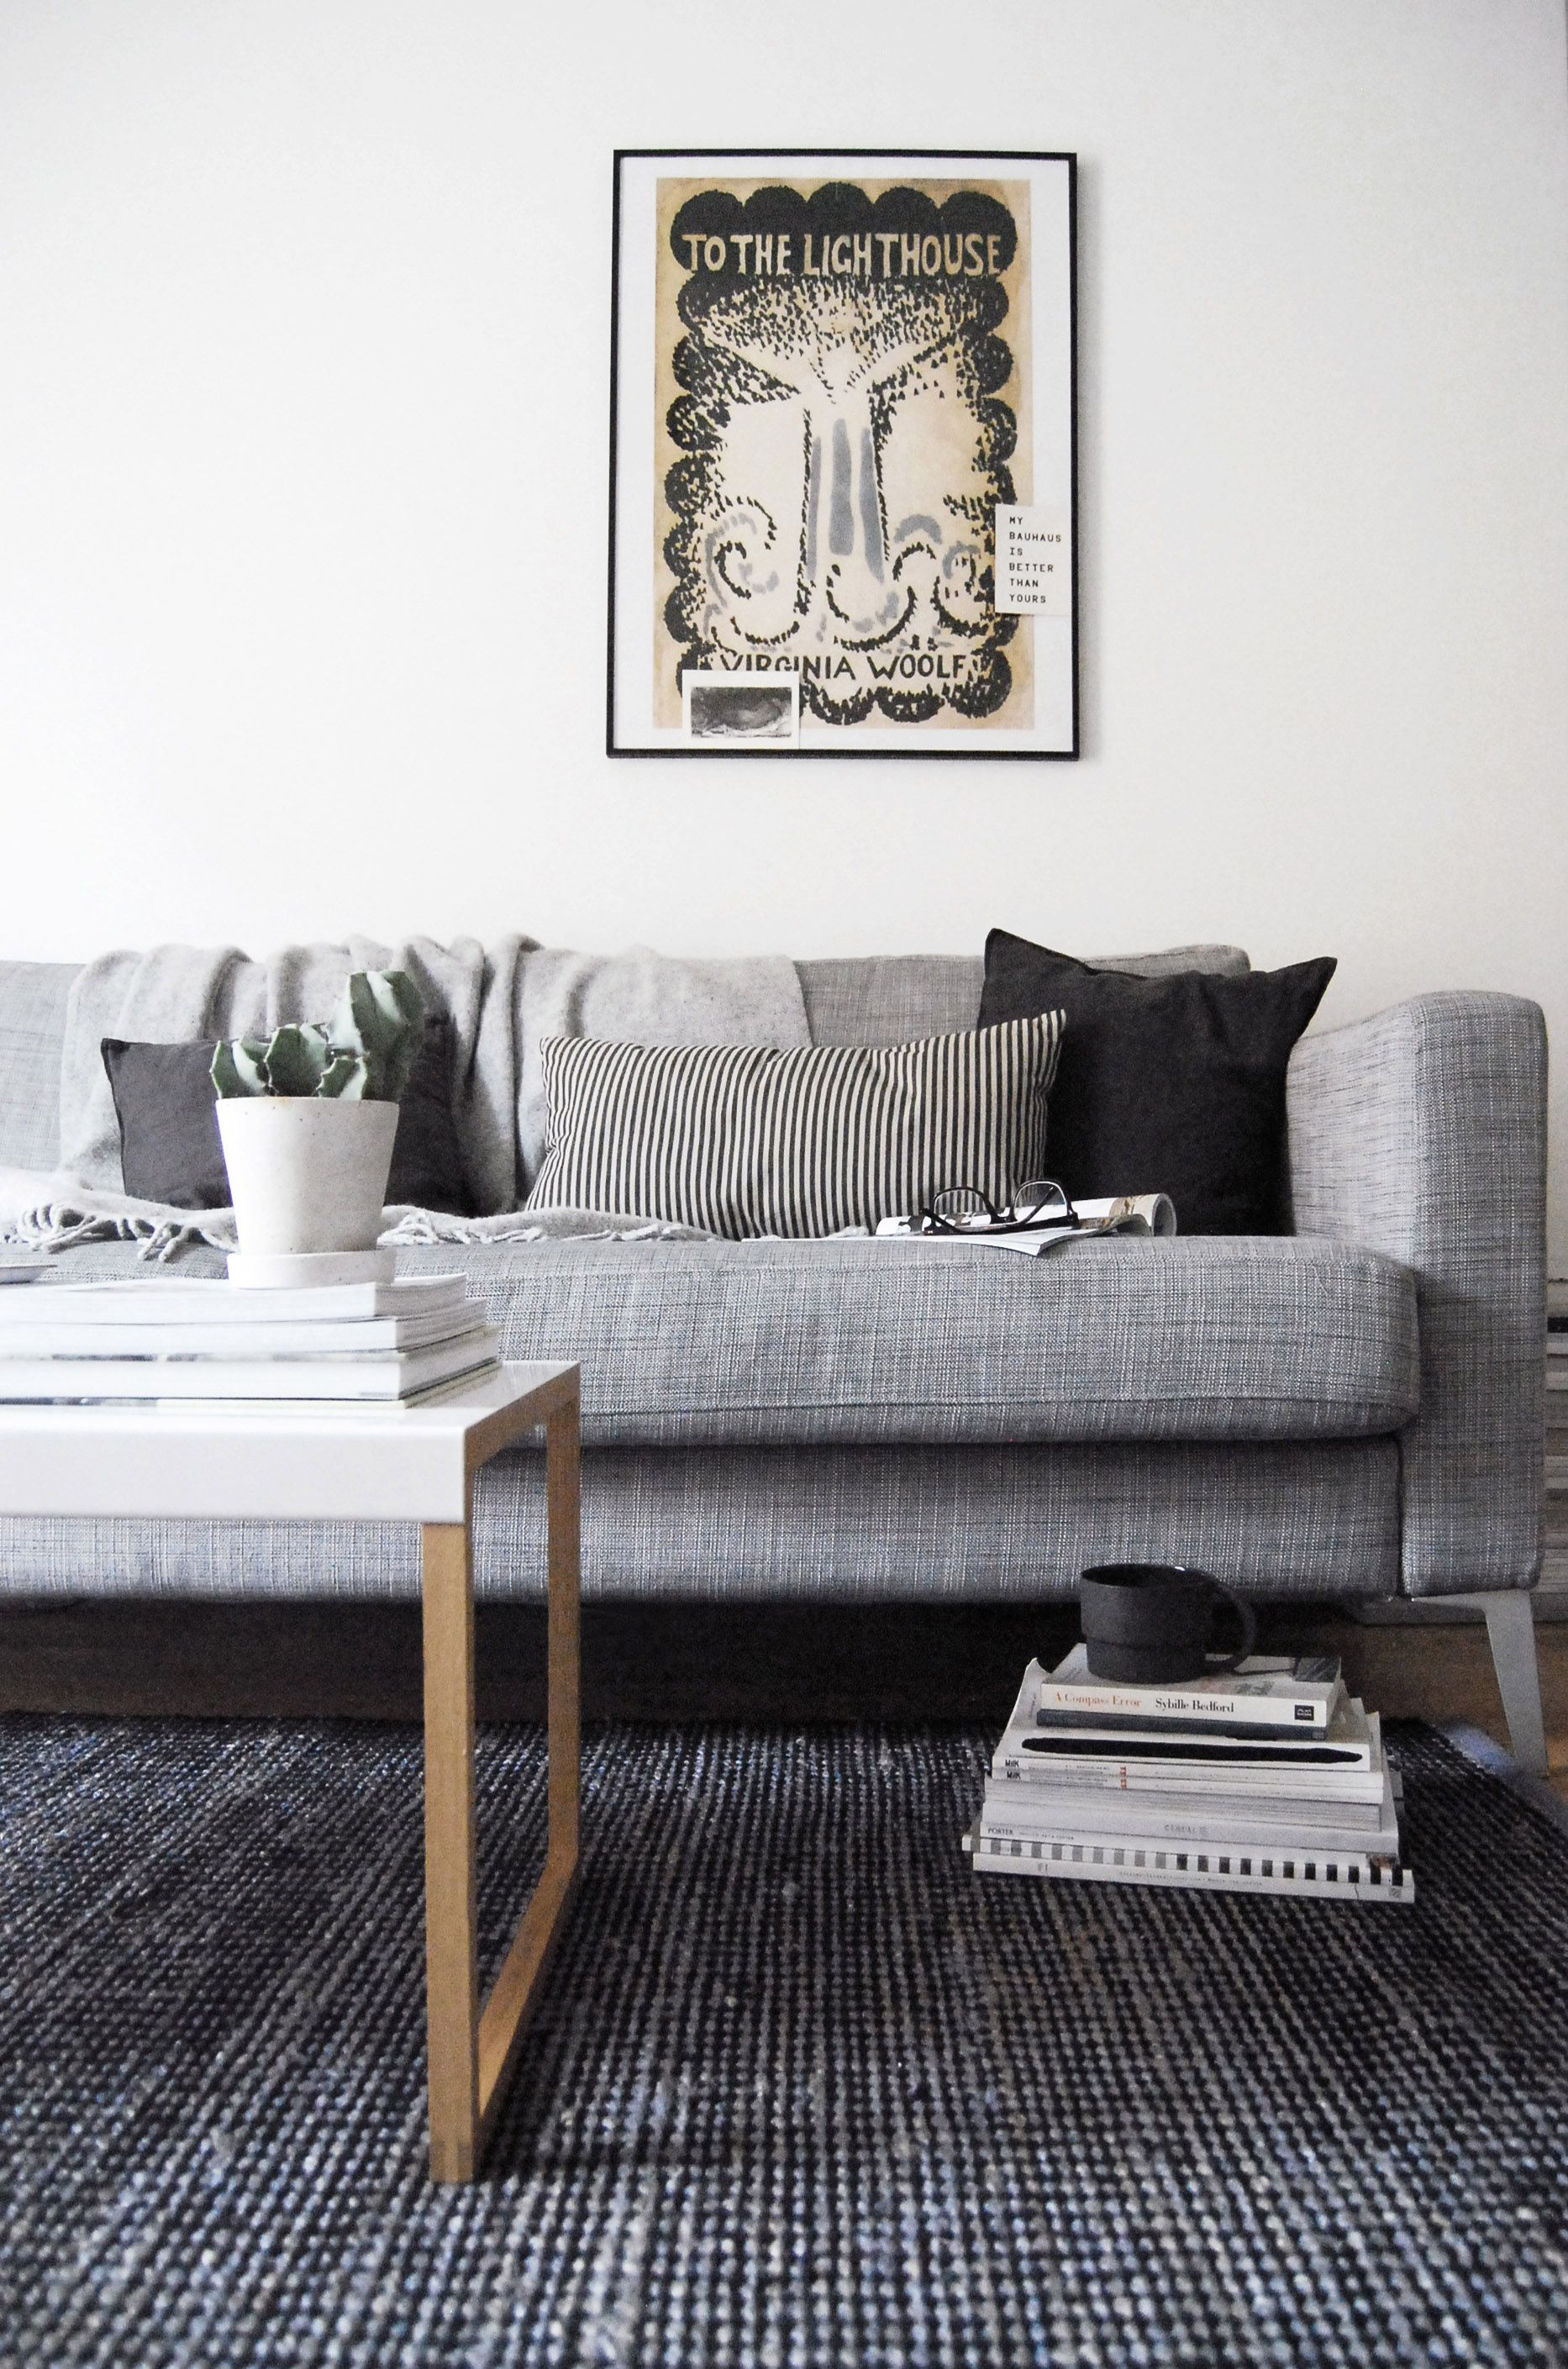 Dark Grey Living Room Rugs Ideas For Wall With Tv Finding The Perfect Rug Pinterest A Moody Monochrome White Walls Sofa And